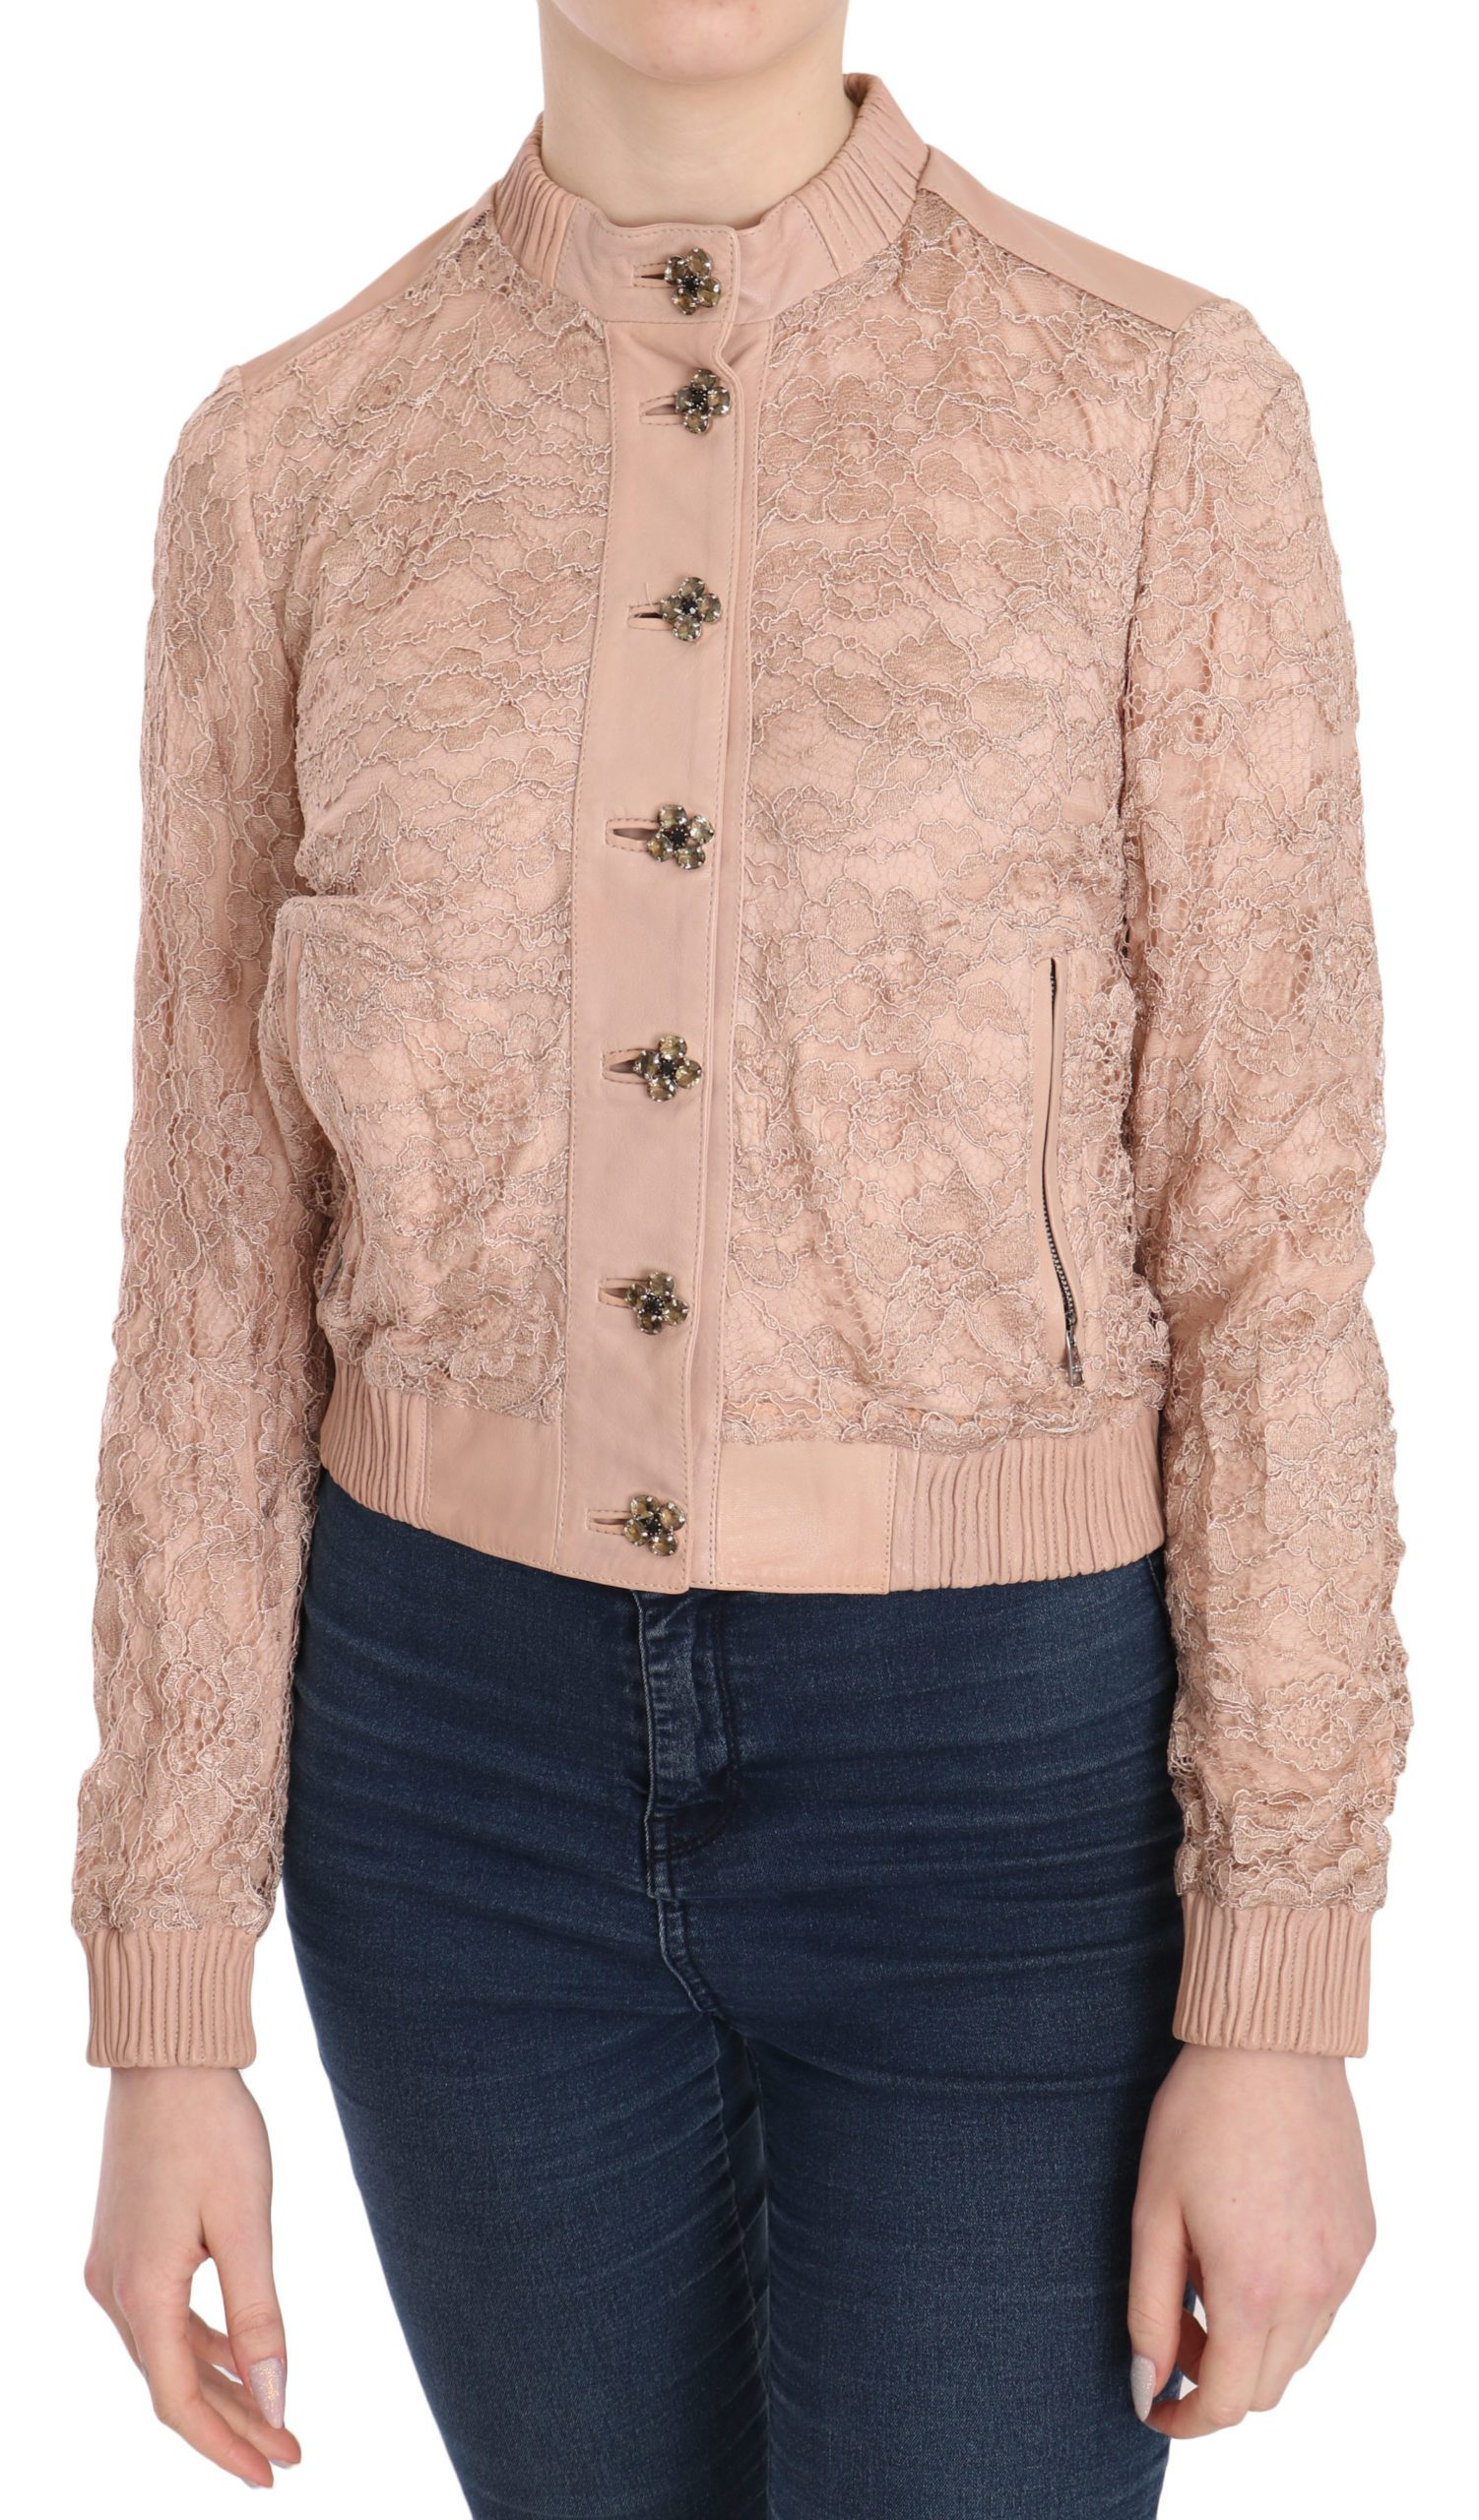 Dolce & Gabbana Women's Leather Lace Crystal Coat Pink TSH3704 - IT40|S